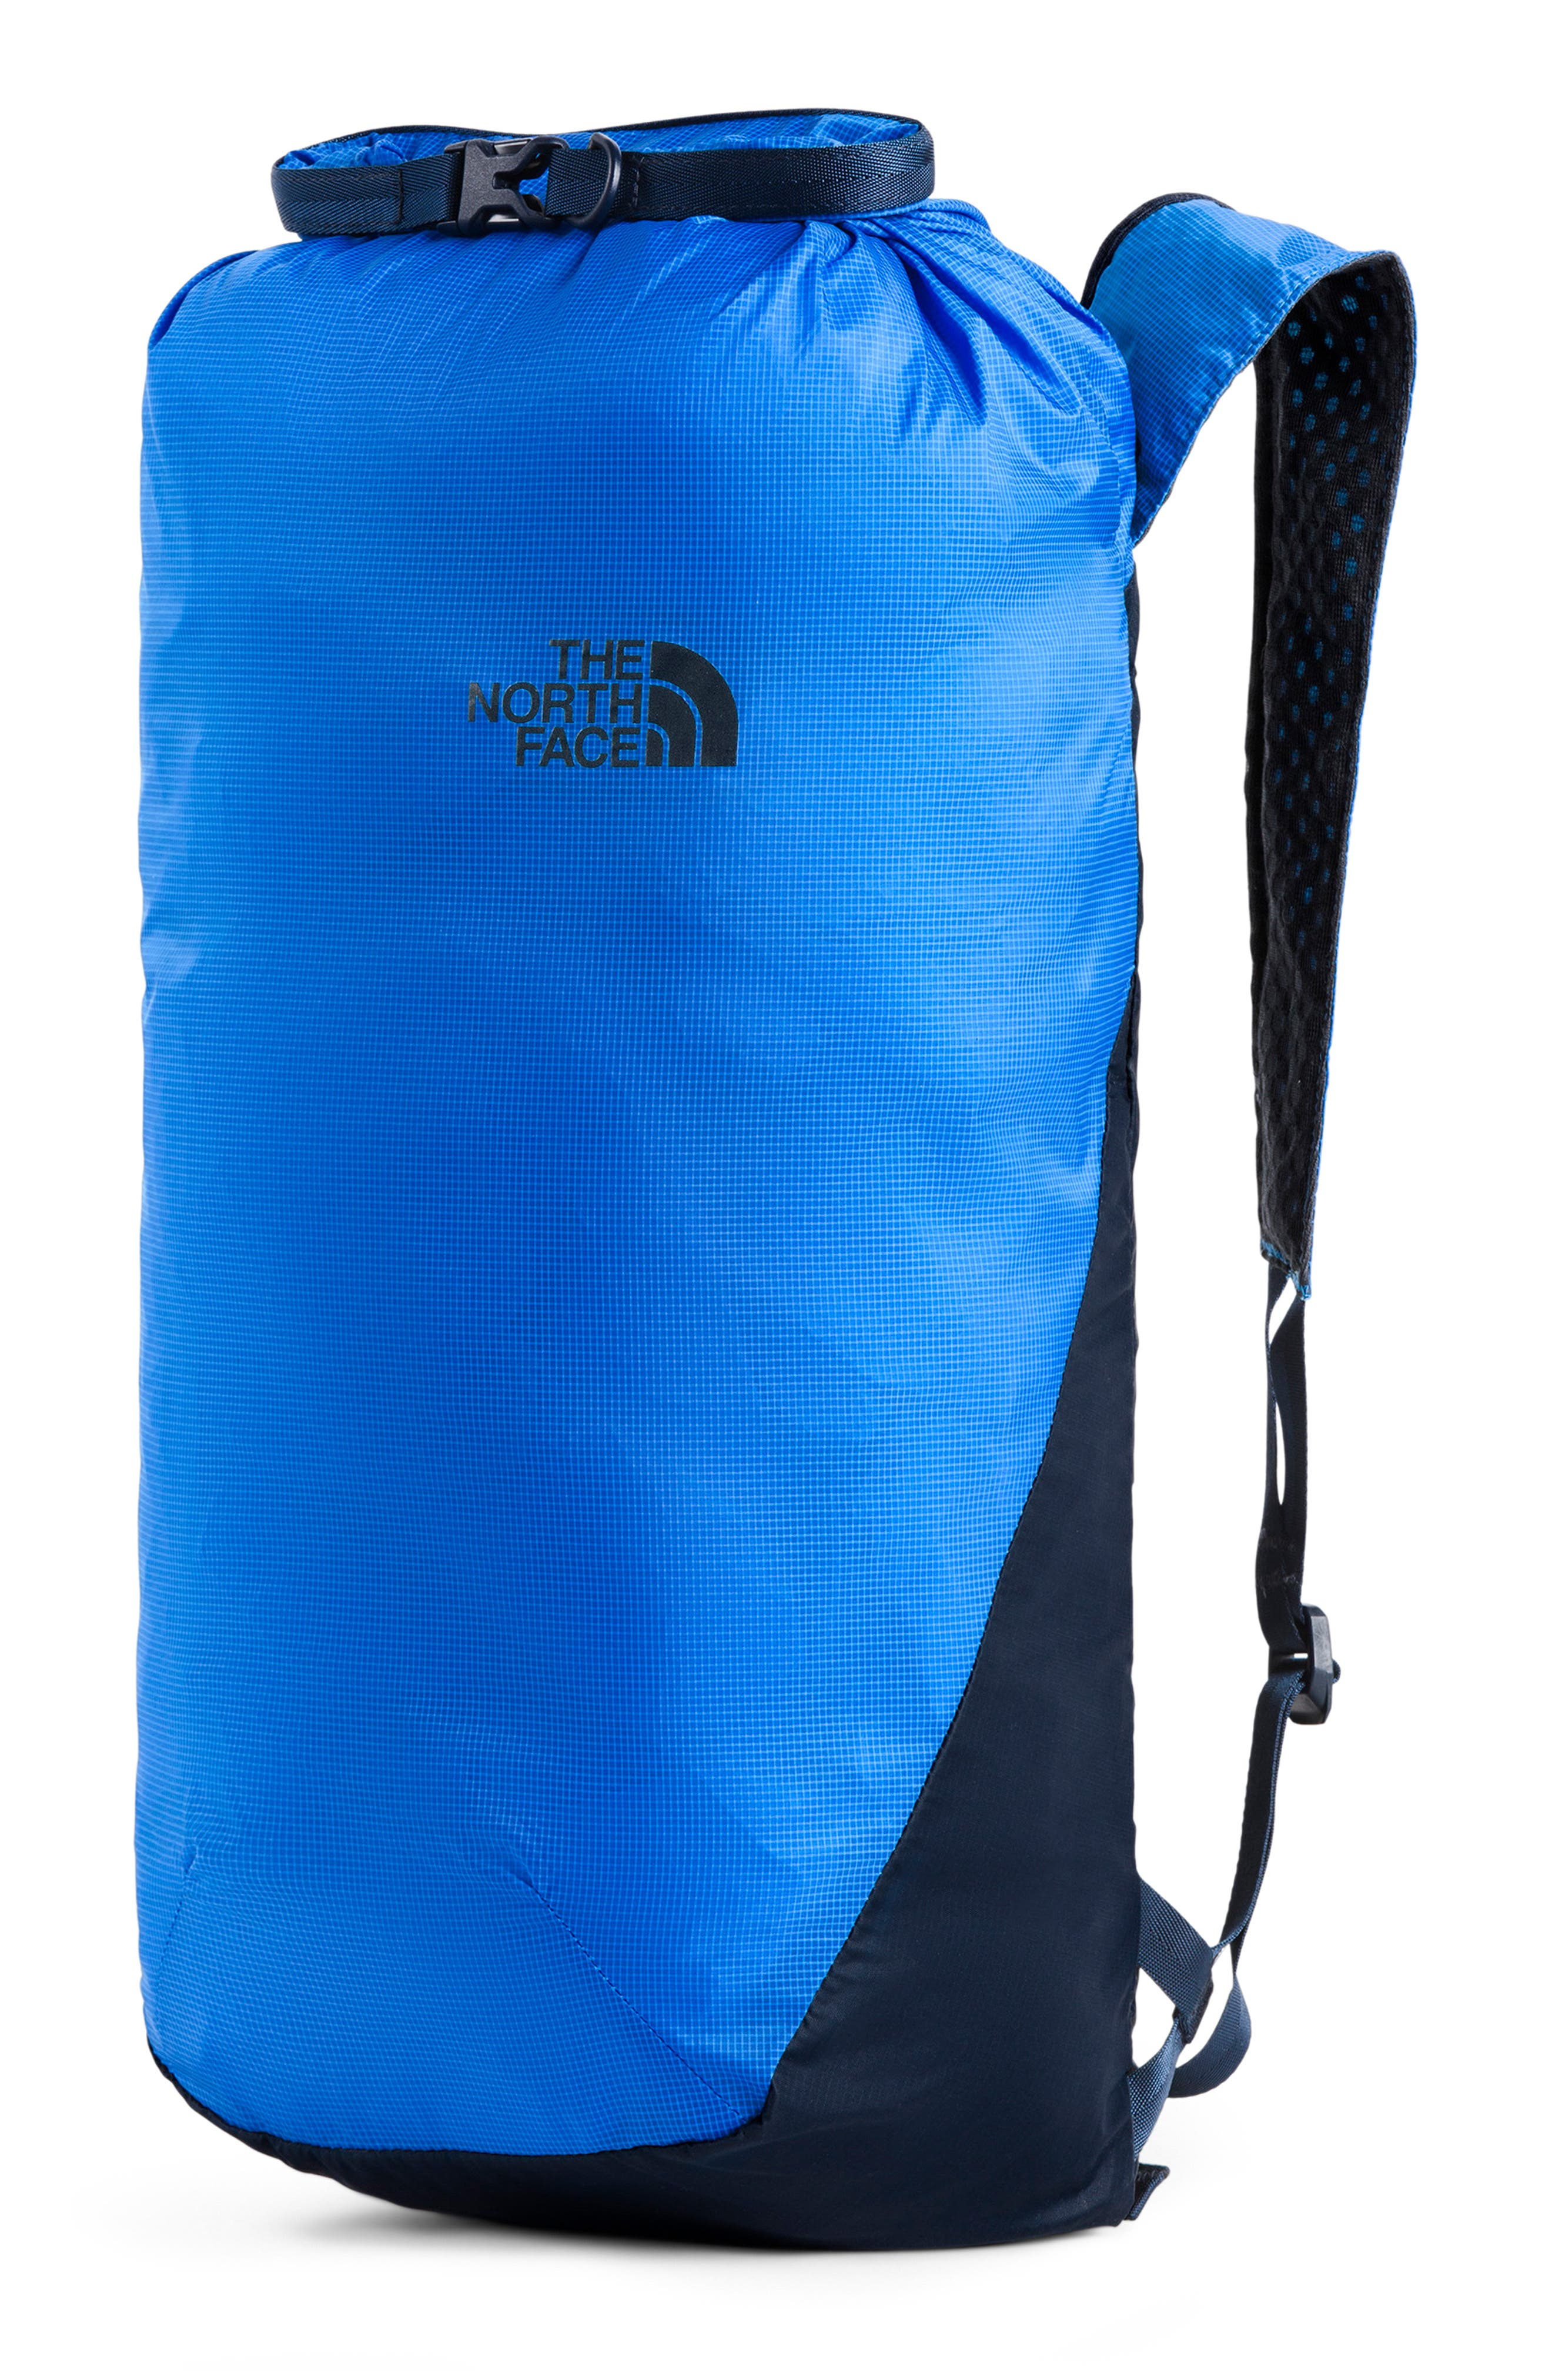 The North Face Flyweight Rolltop Backpack - Blue